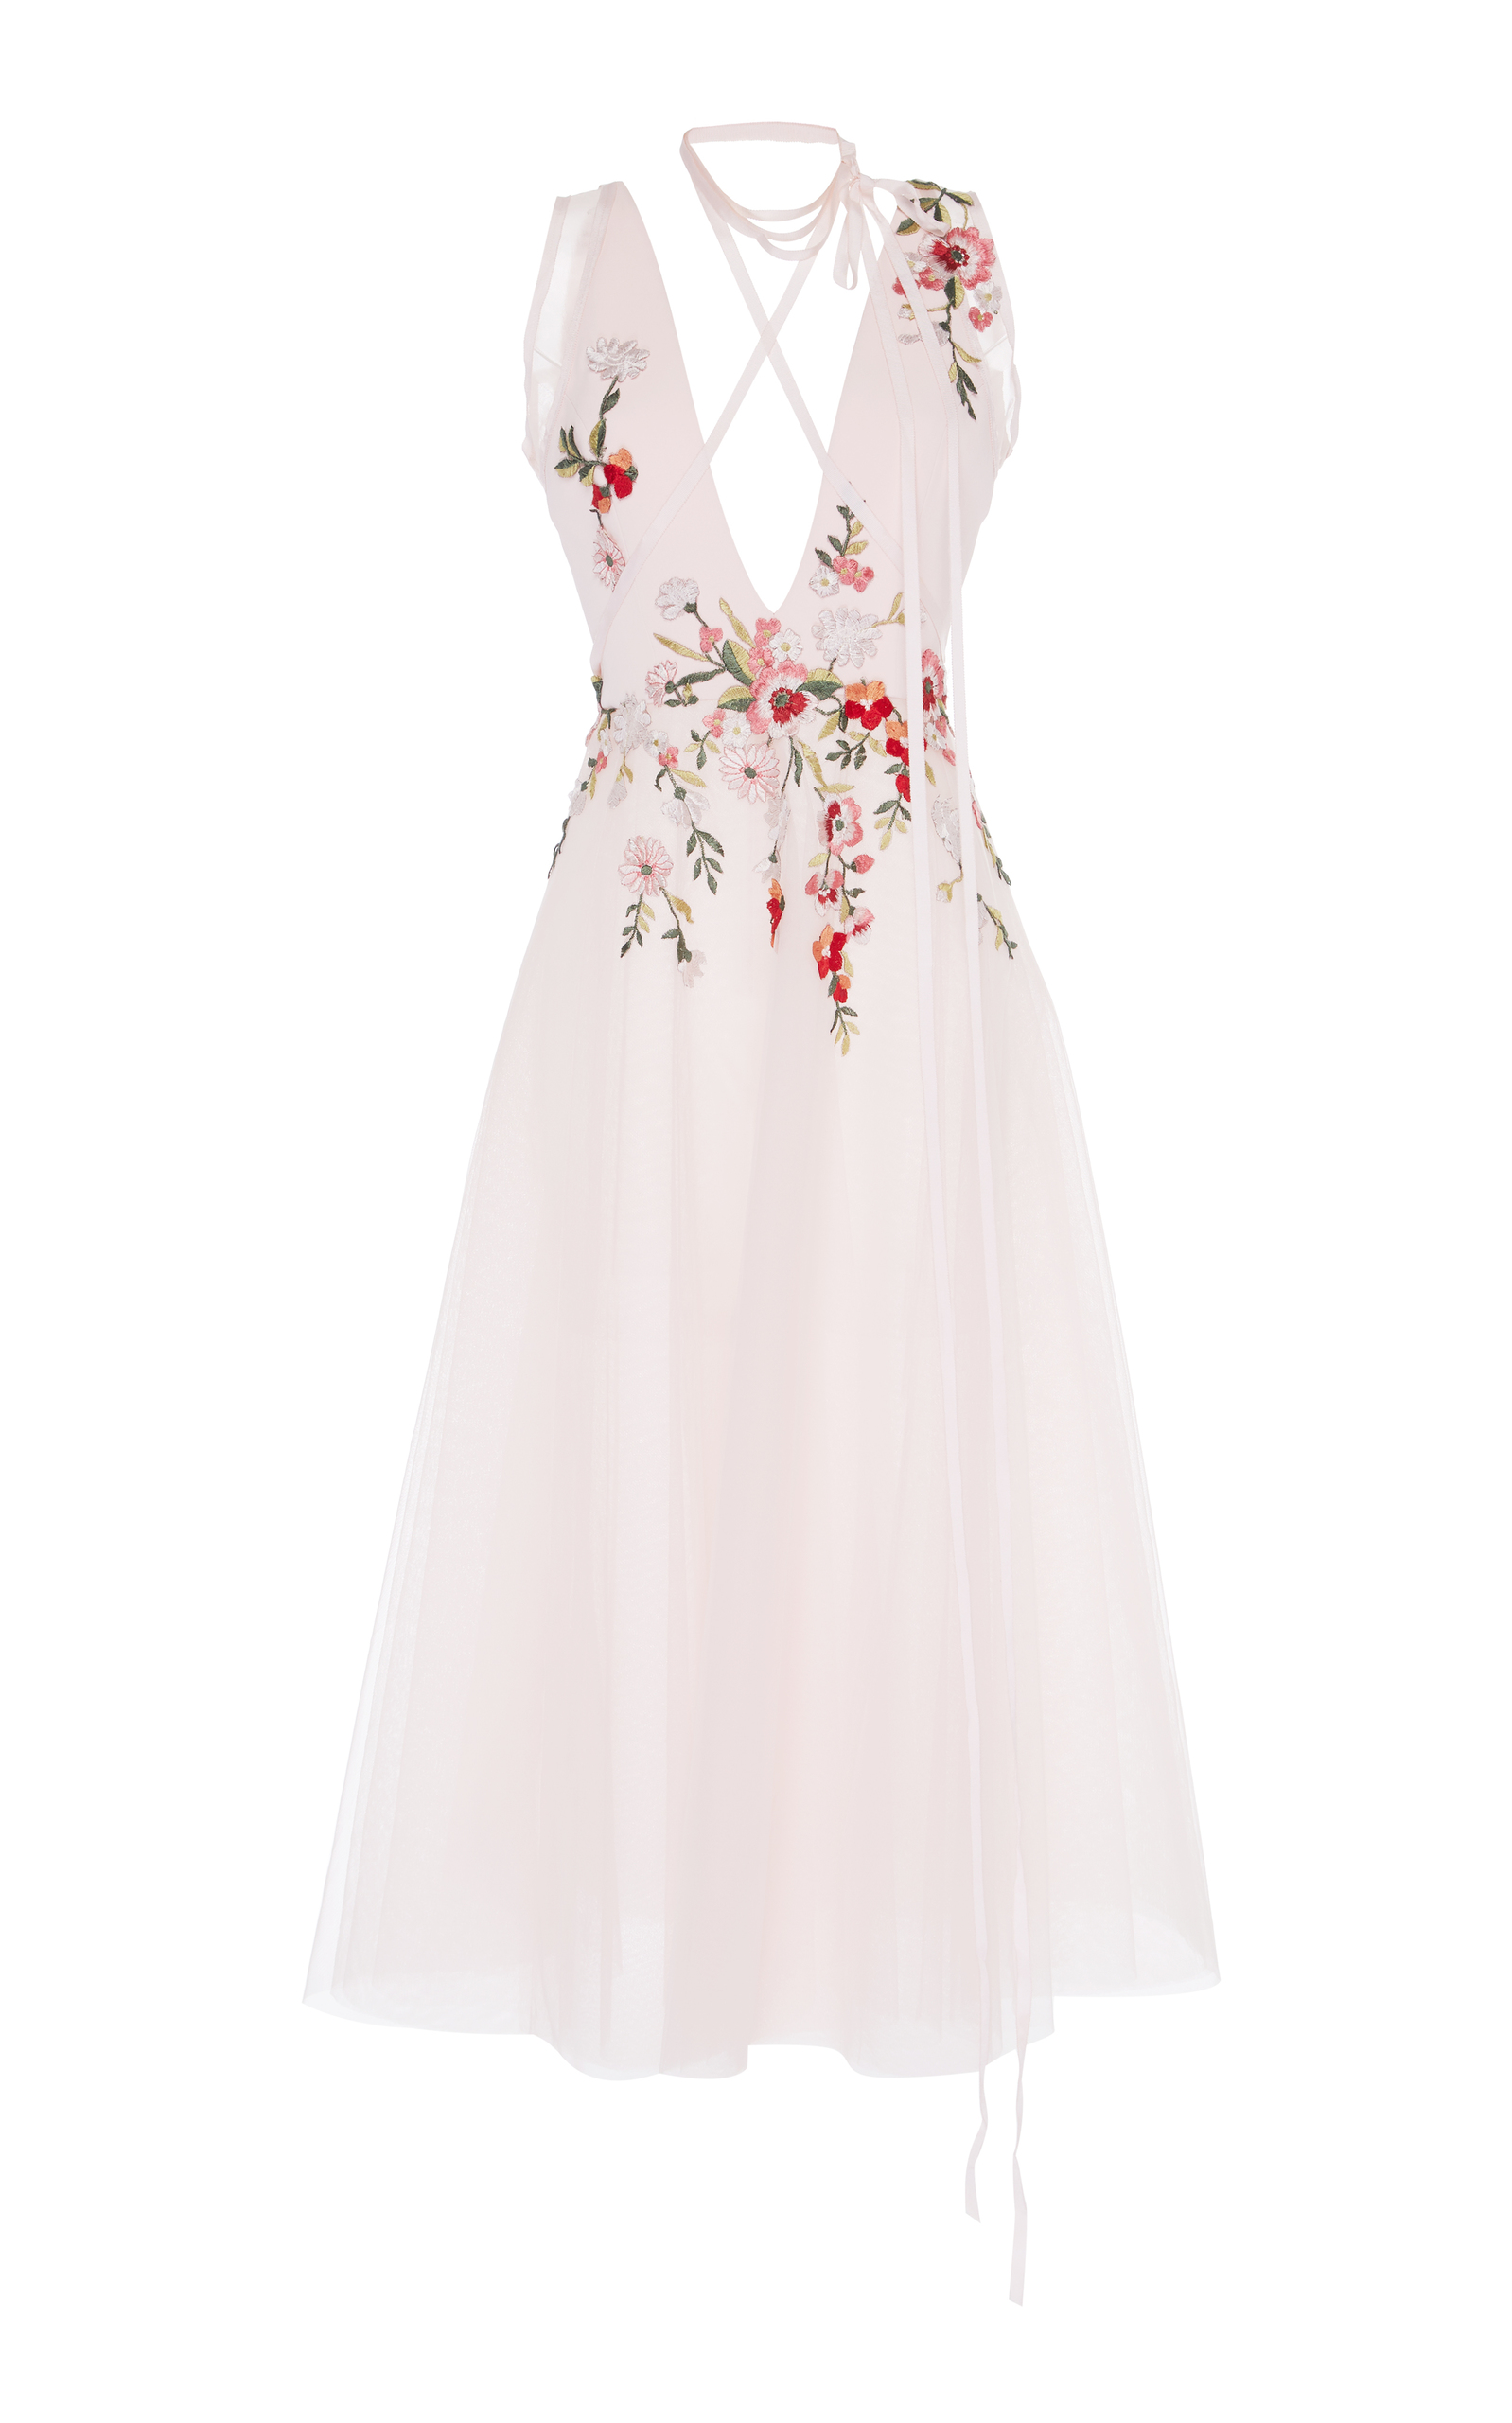 841be5506d Georges HobeikaFloral Embroidered Tea-Length Dress. CLOSE. Loading